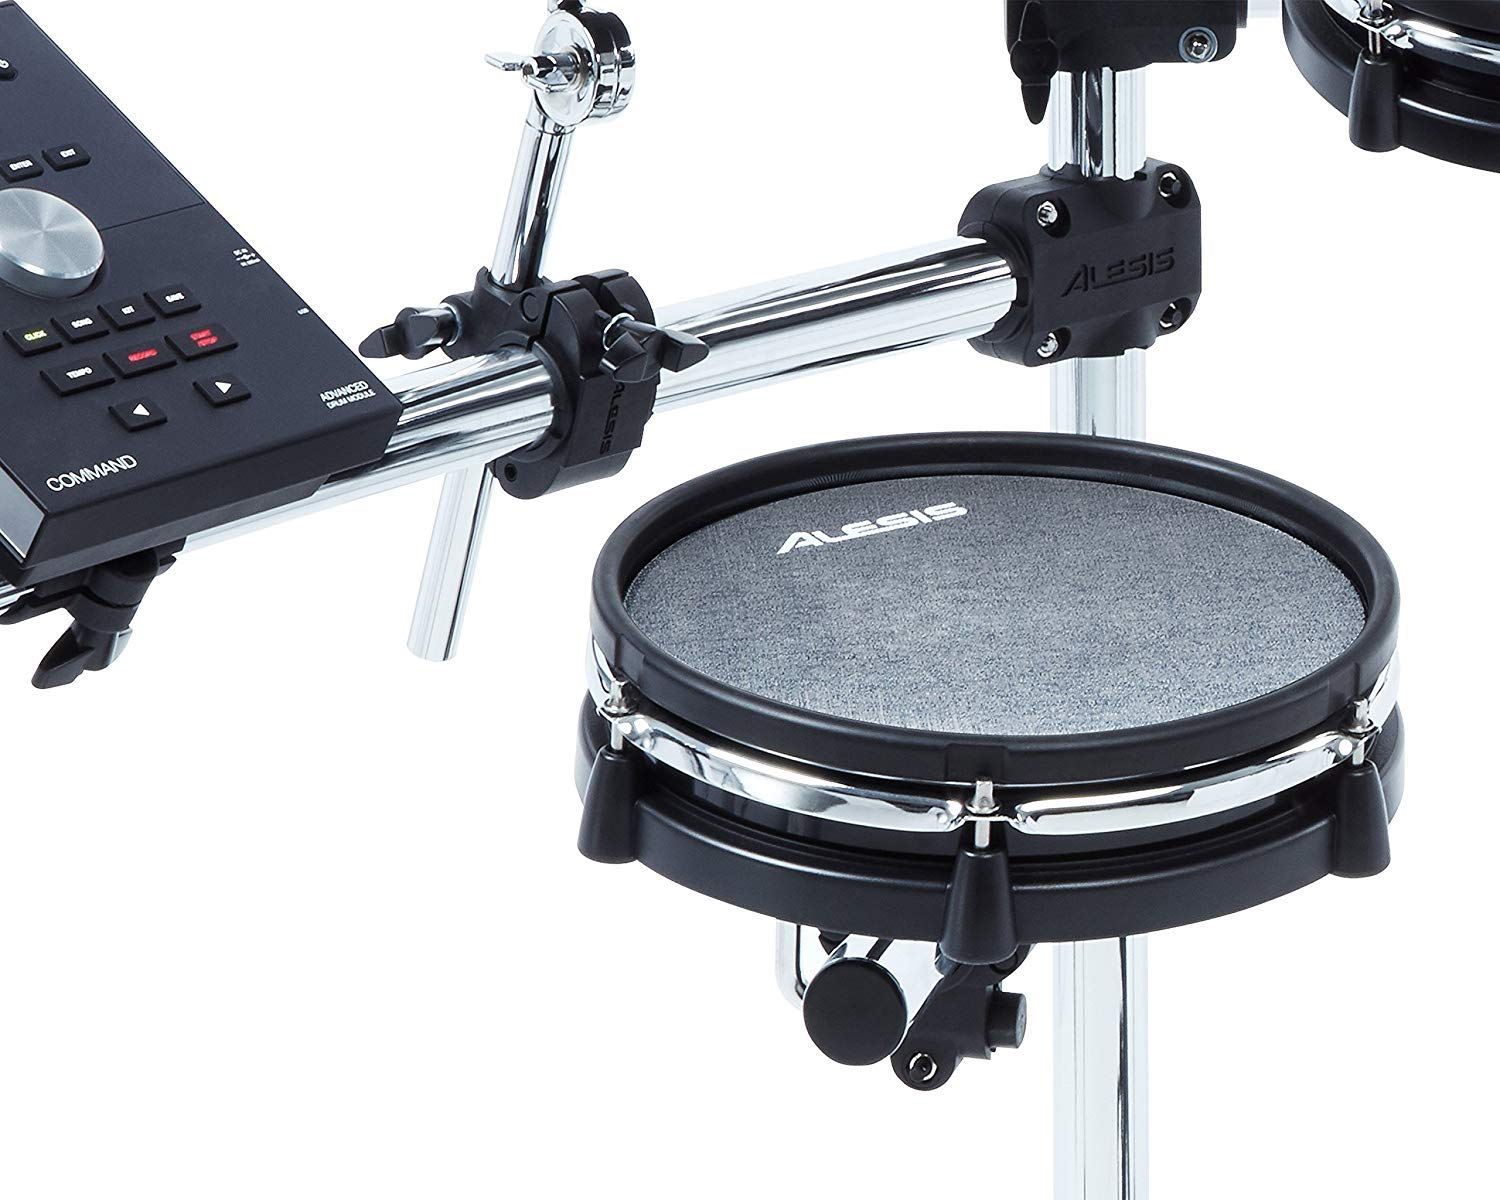 Alesis COMMAND MESH KIT Eight-Piece Electronic Drum Kit with Pair of Drumsticks + Samson SR550 Studio Headphones + Hosa 3.5 mm Interconnect Cable, 10 feet - Deluxe Accessory Bundle by Alesis (Image #9)